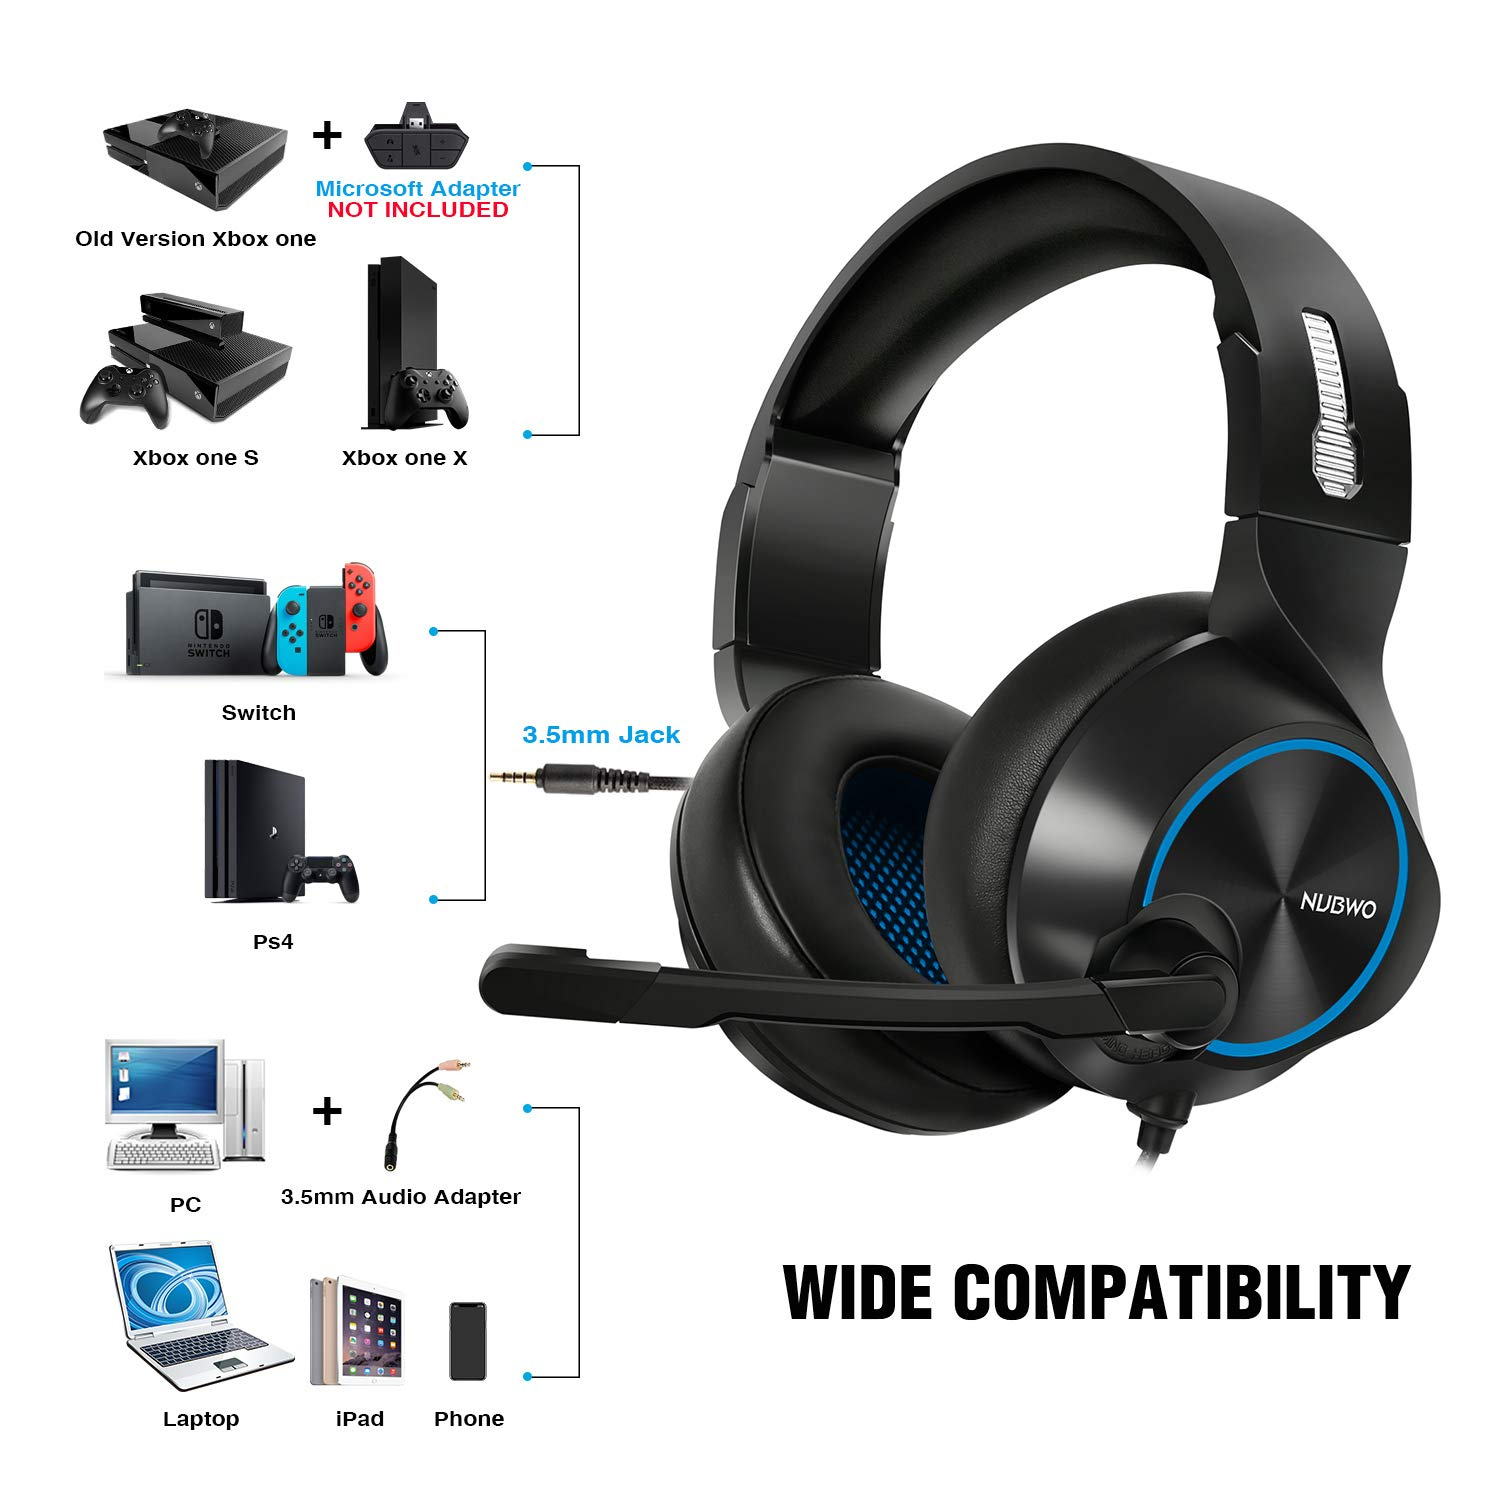 Gaming Headset for Xbox One, PS4, PC, Controller, ARKARTECH Noise Cancelling Over Ear Headphones with Mic, Bass Surround Soft Memory Earmuffs for Computer Laptop Switch Games by ARKARTECH (Image #4)